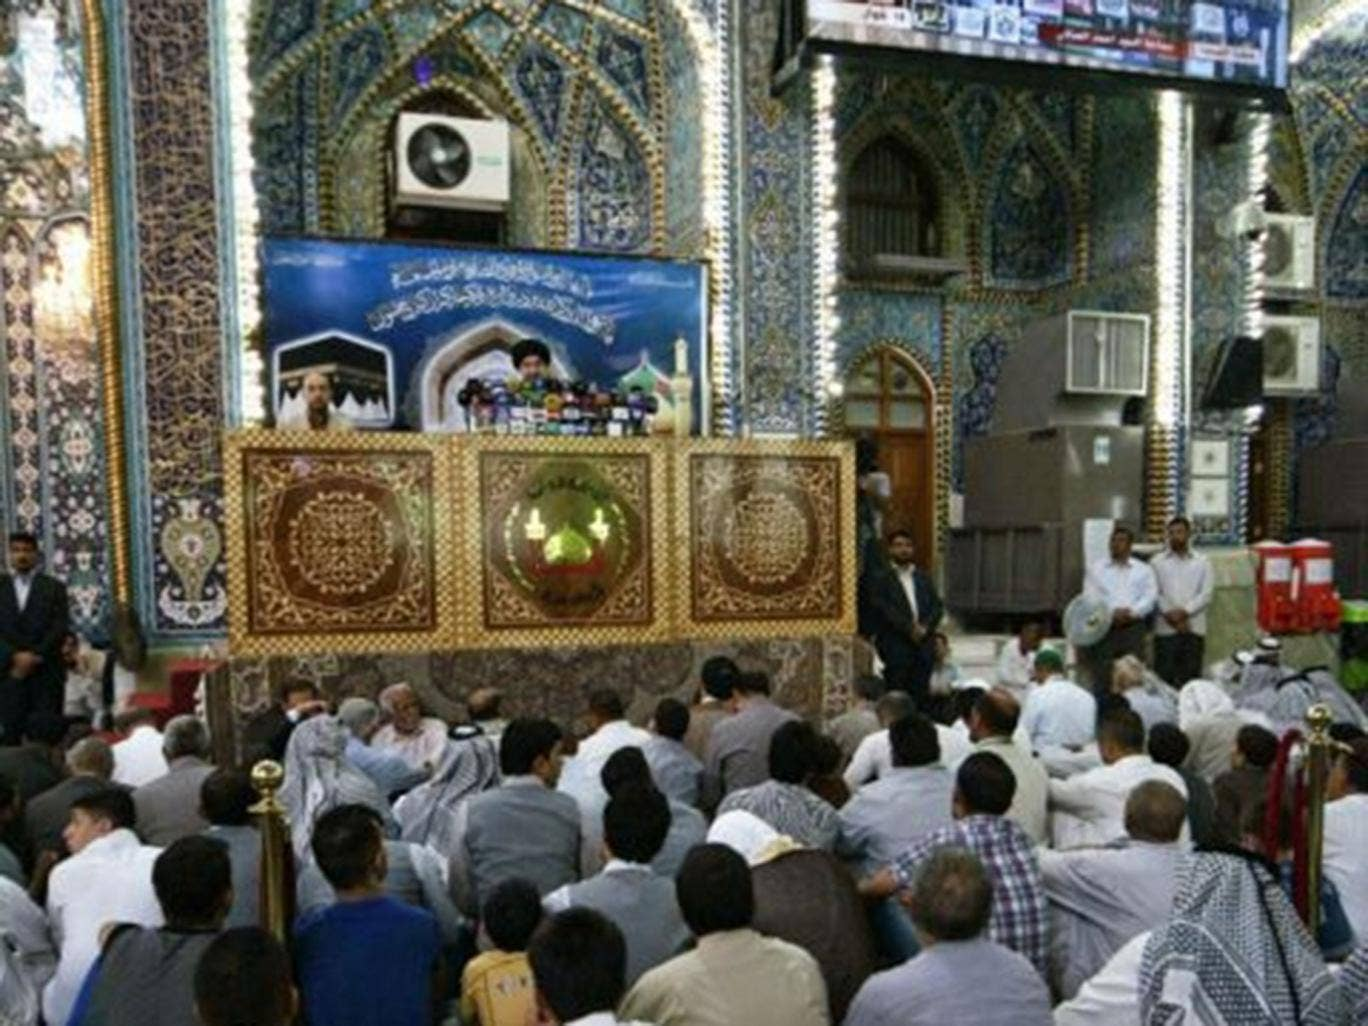 Iraqi Shiites attend Friday prayers at the Imam Hussein shrine in Karbala, southern Baghdad, Iraq, 15 August 2014. Iraq's top Shiite cleric Ali al-Sistani on 15 August 2014 threw his weight behind prime minister-designate Haider al-Abadi, calling on the c